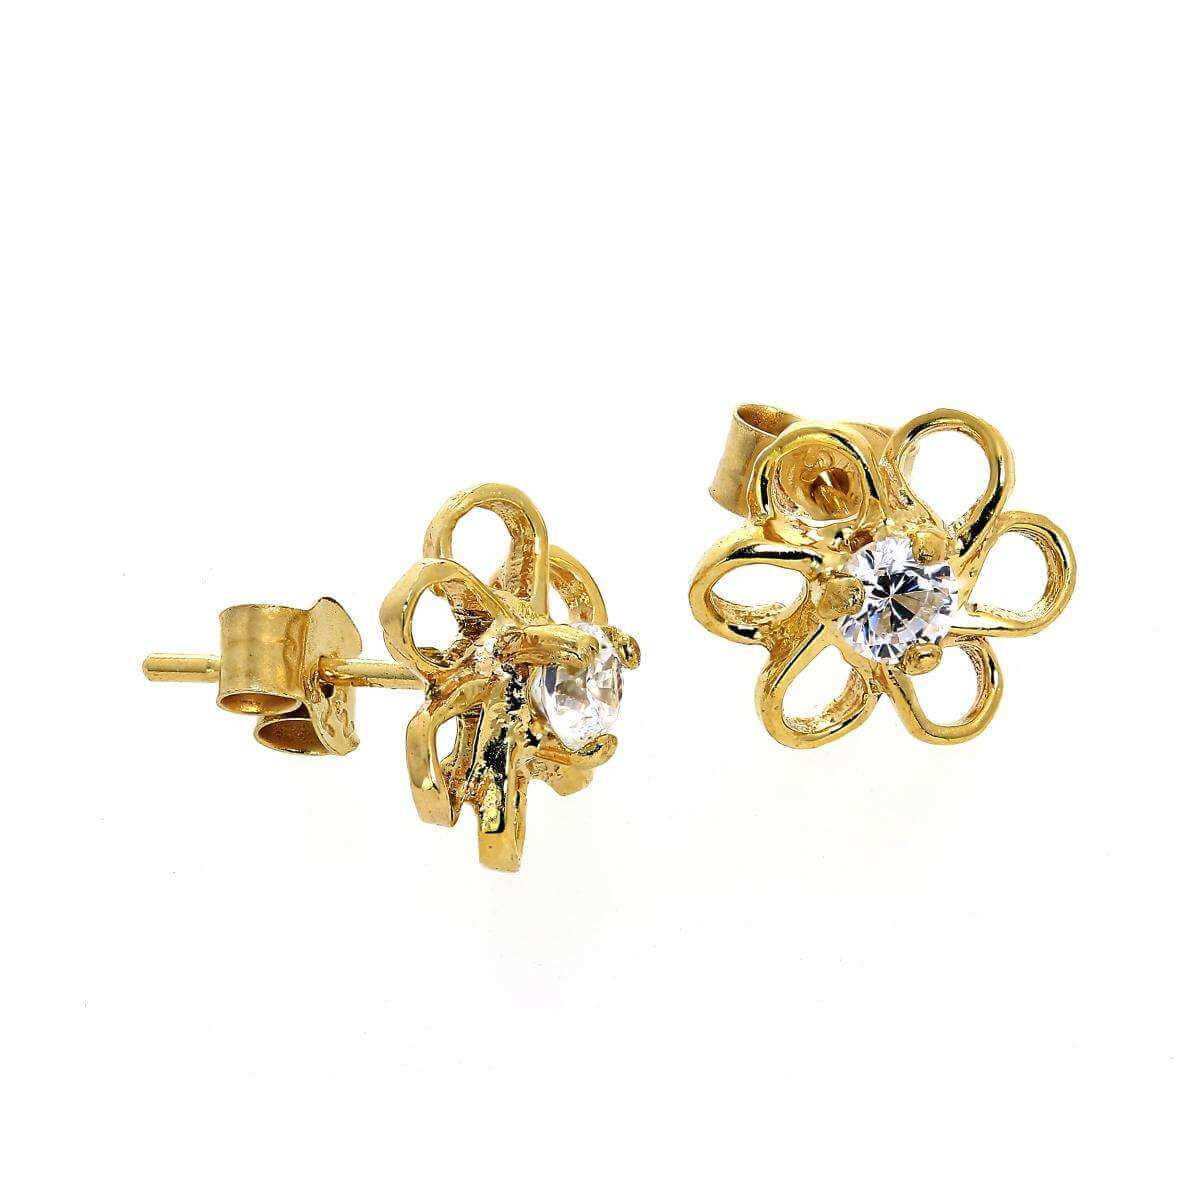 9ct Gold & CZ Crystal Open Flower Stud Earrings